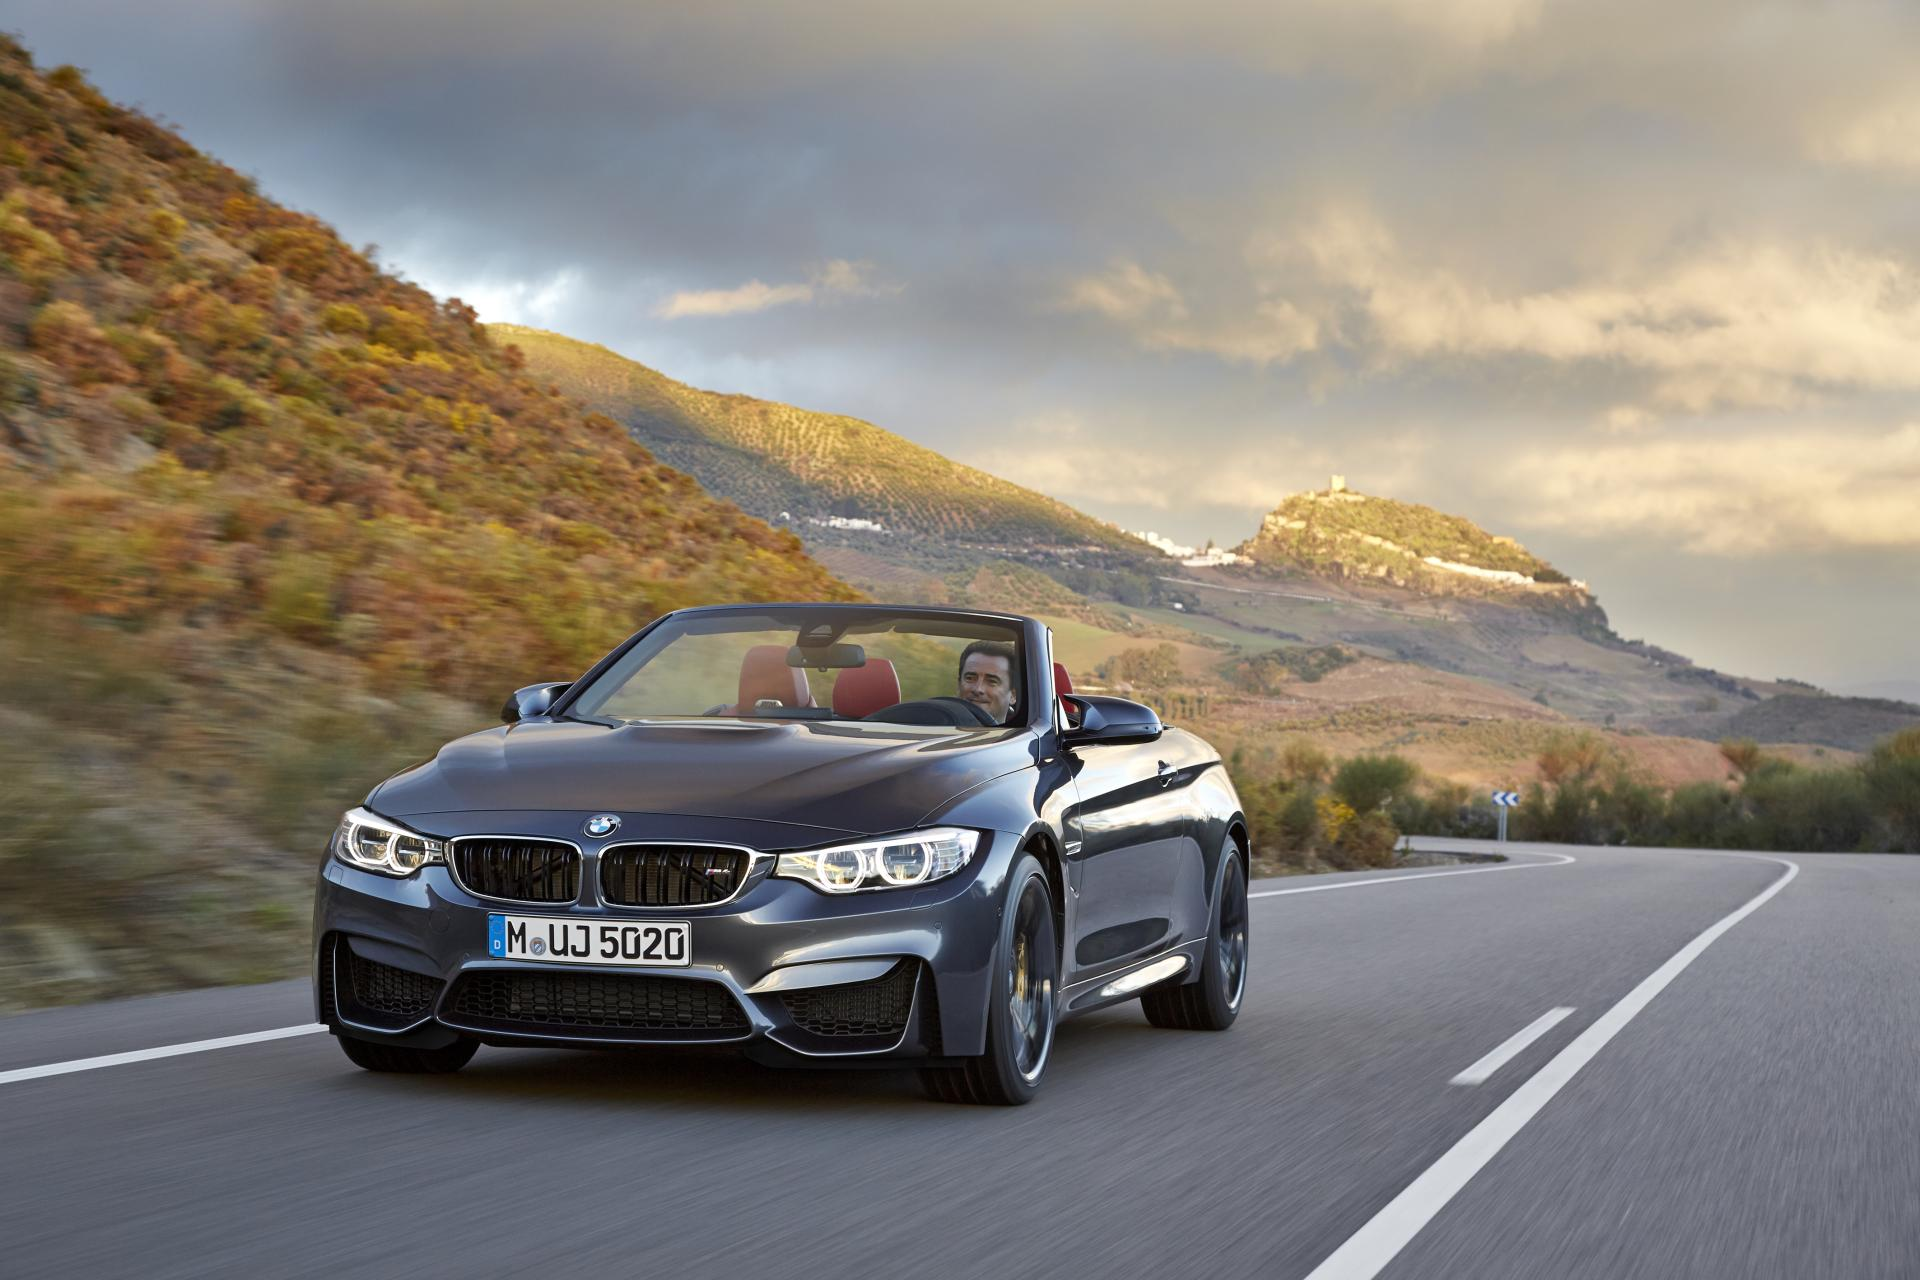 2015 Bmw M4 Convertible News And Information